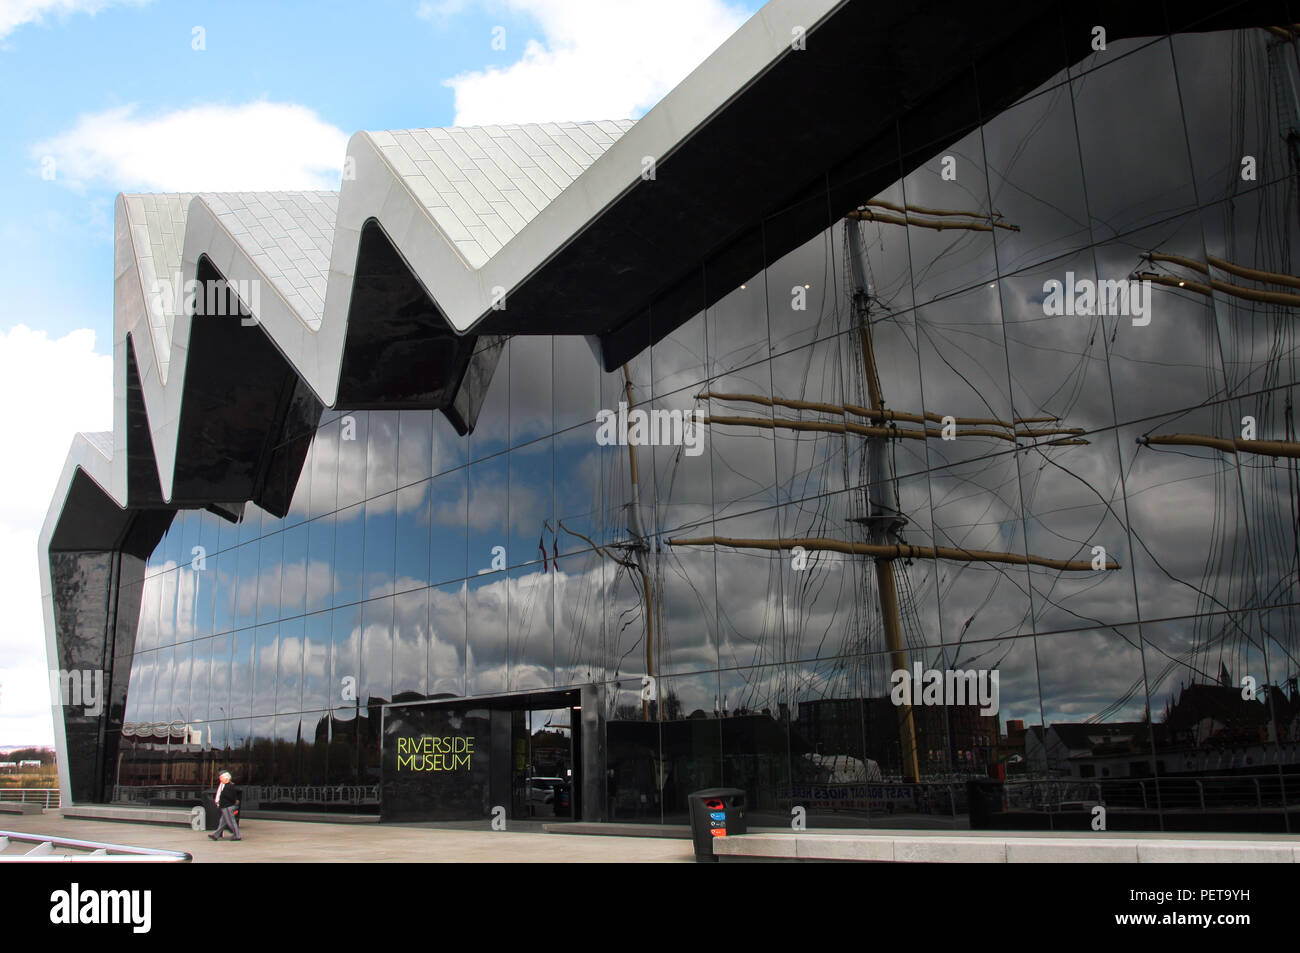 The dramatic front of the Riverside Museum which sits on the banks of the River Clyde. It is Glasgow's transport museum and was designed by Zaha Hadid. It is an extremely popular museum that attracts many tourists and visitors every year. The tall ship, The Glenlee, which was built on the Clyde and is moored at the museum, is reflected in the windows of the museum. Stock Photo